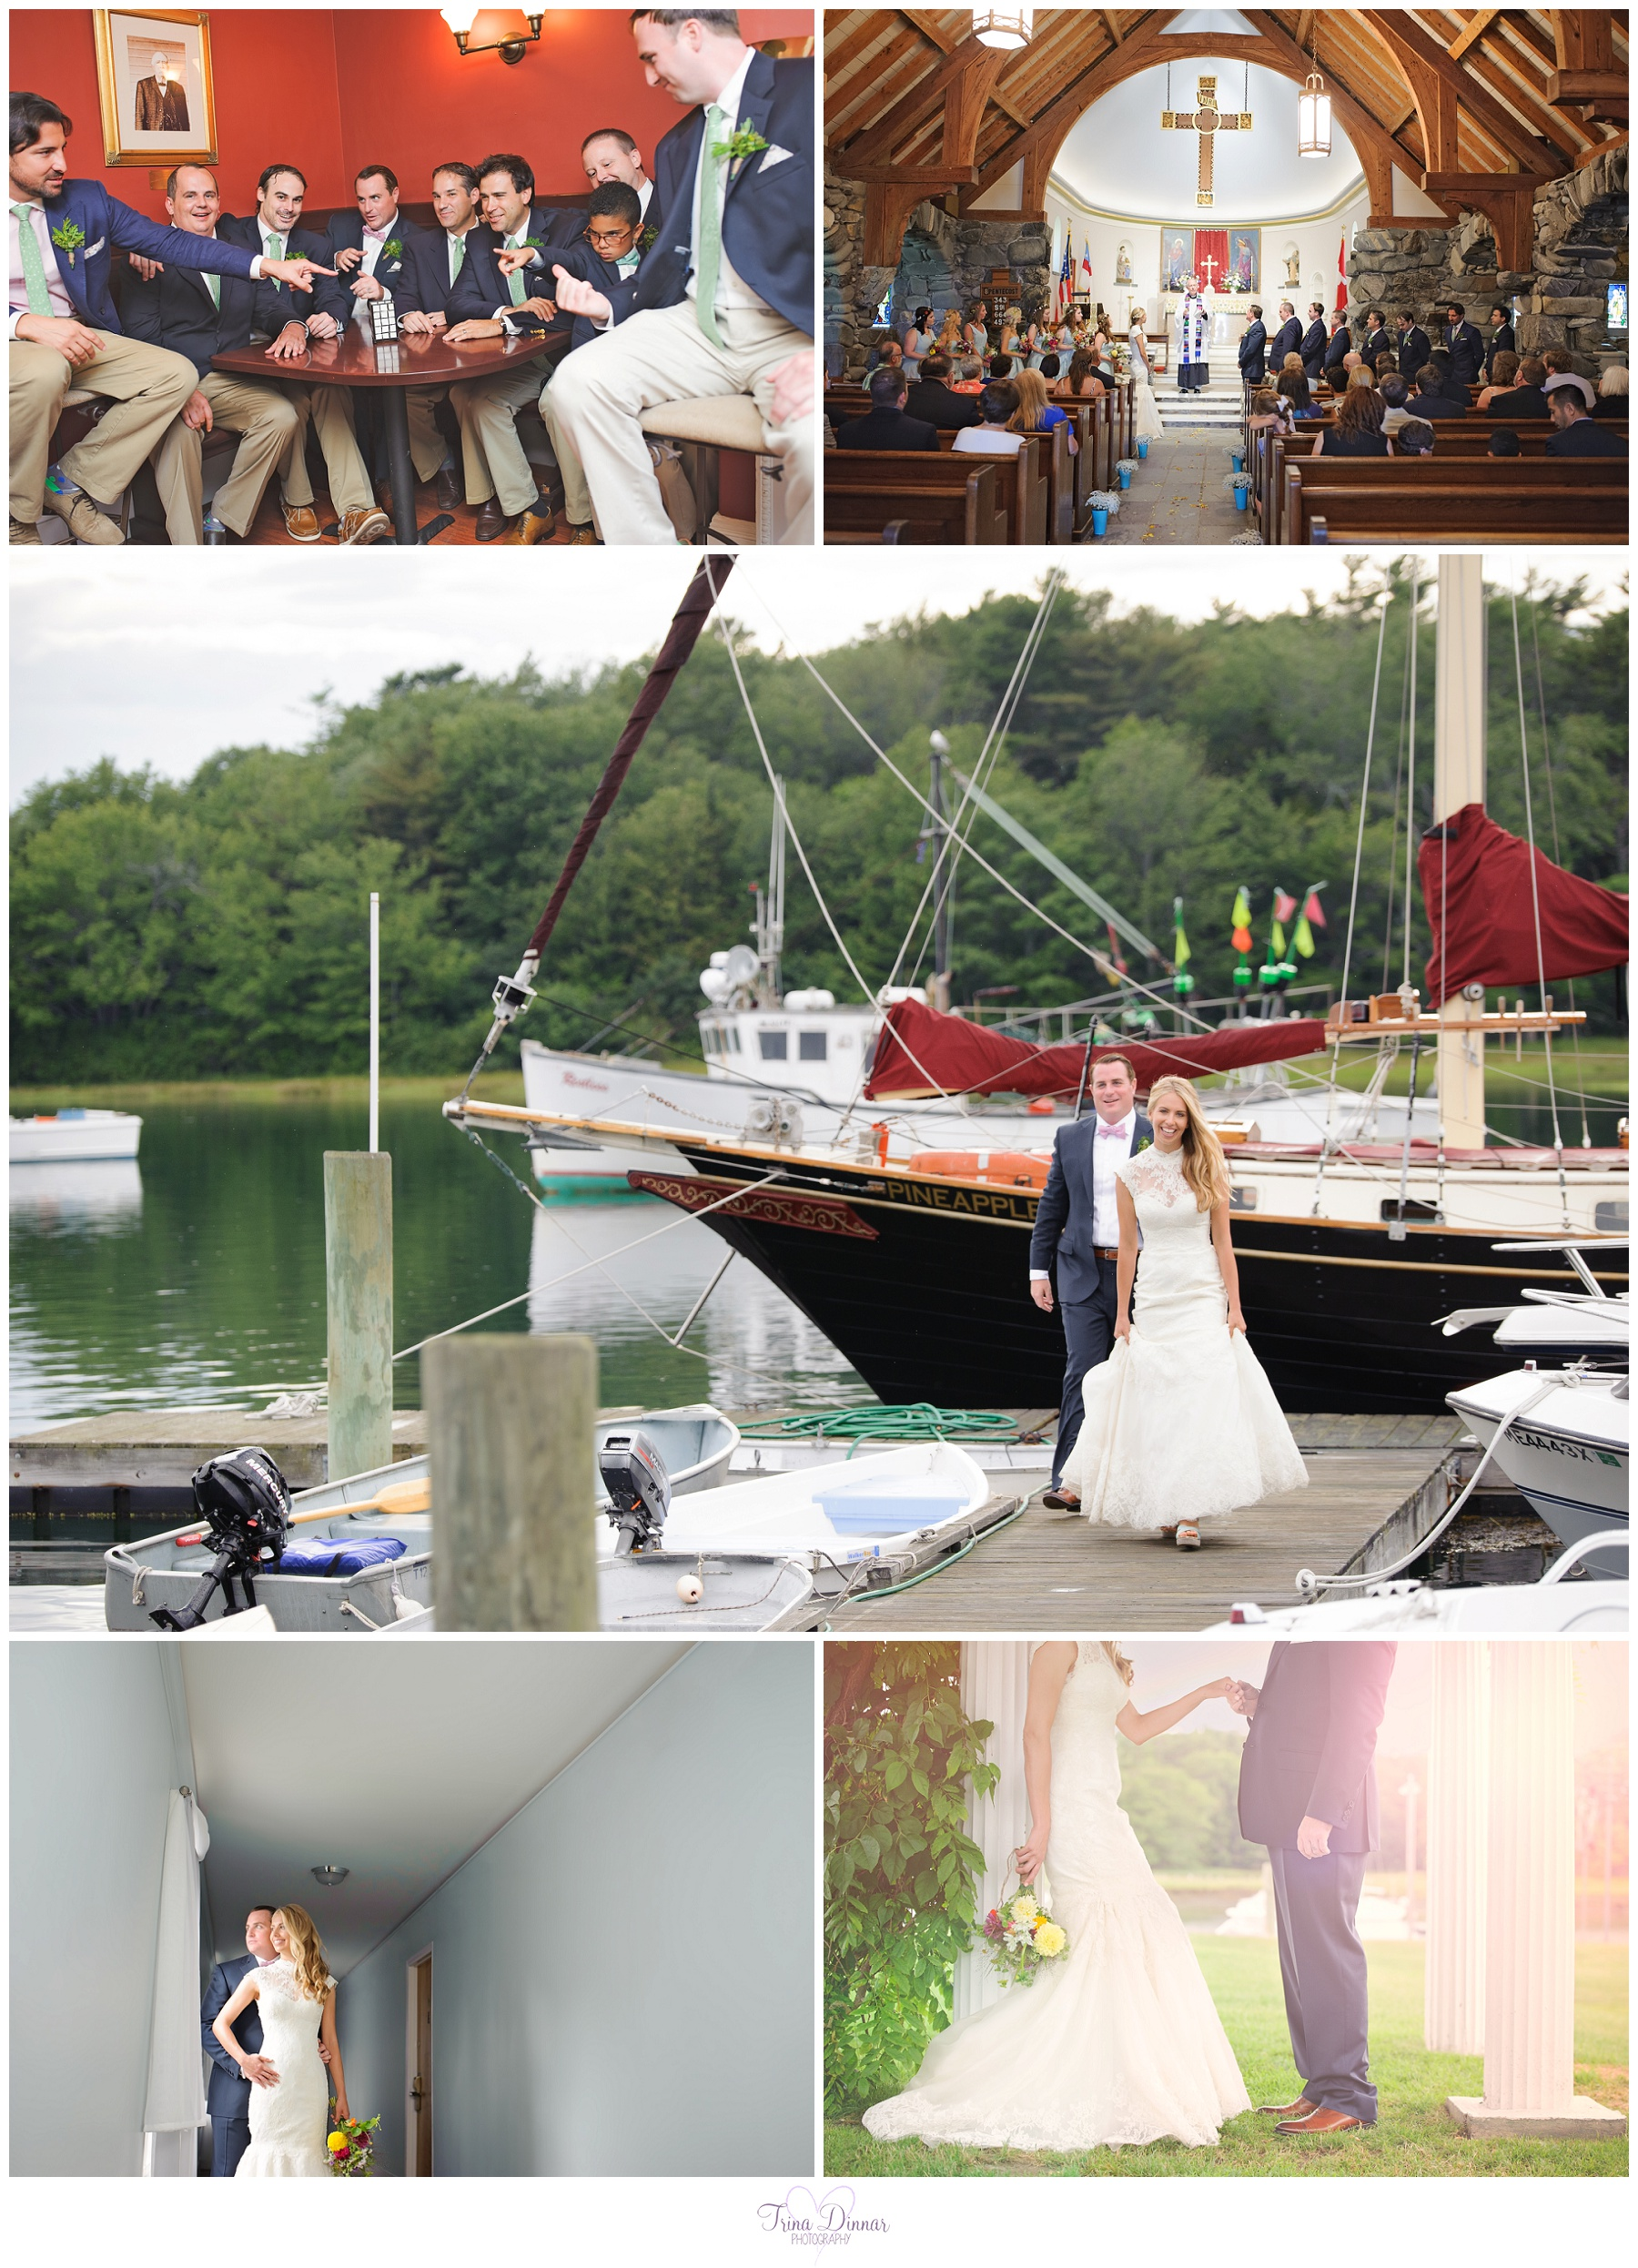 Wedding photography at the Nonantum resort in Kennebunkport, Maine